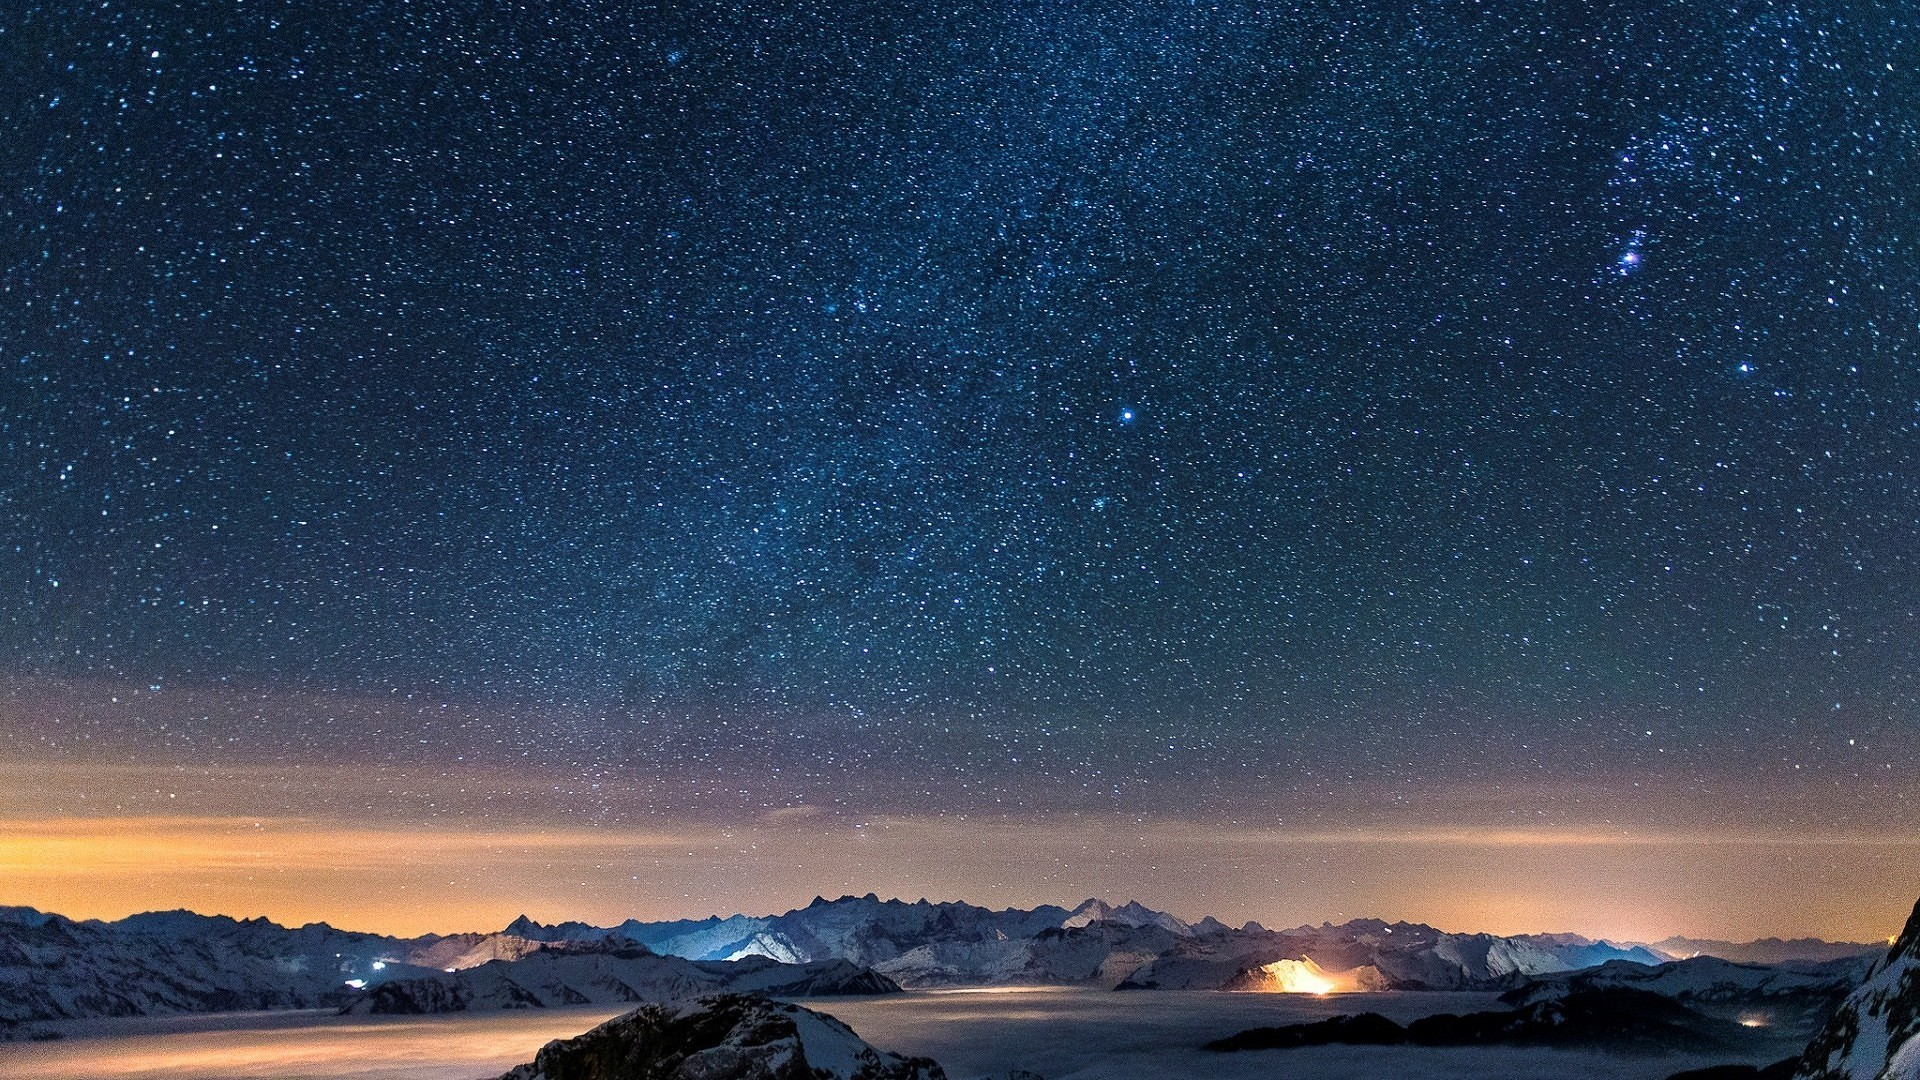 Stars Wallpaper in Nature Picspaper with Night Sky 1920x1080px